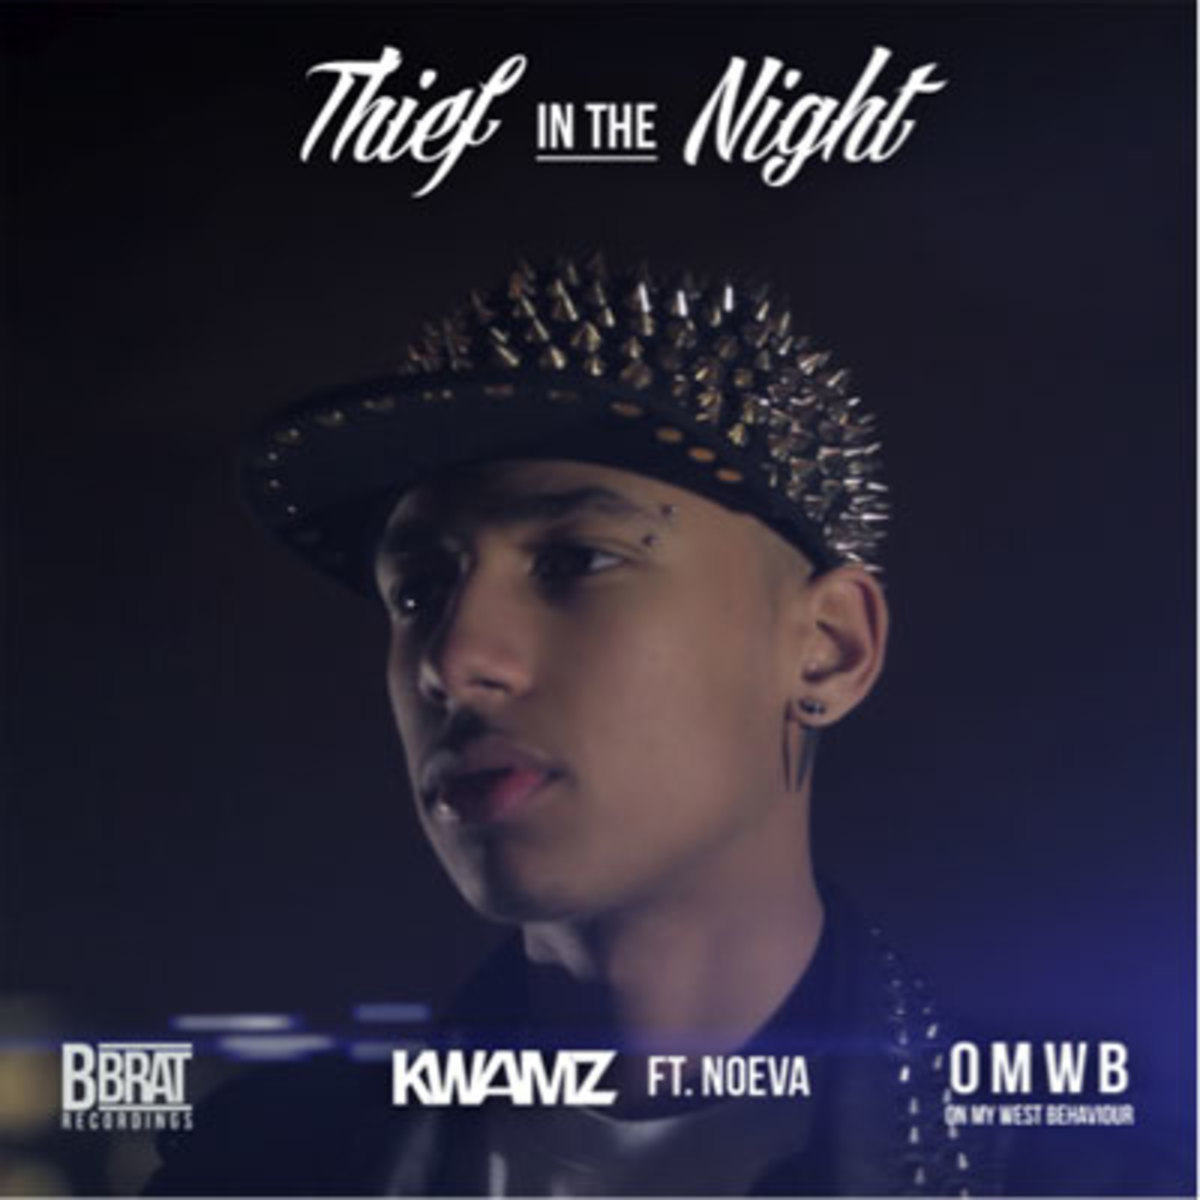 kwamz-theifinthenight.jpg